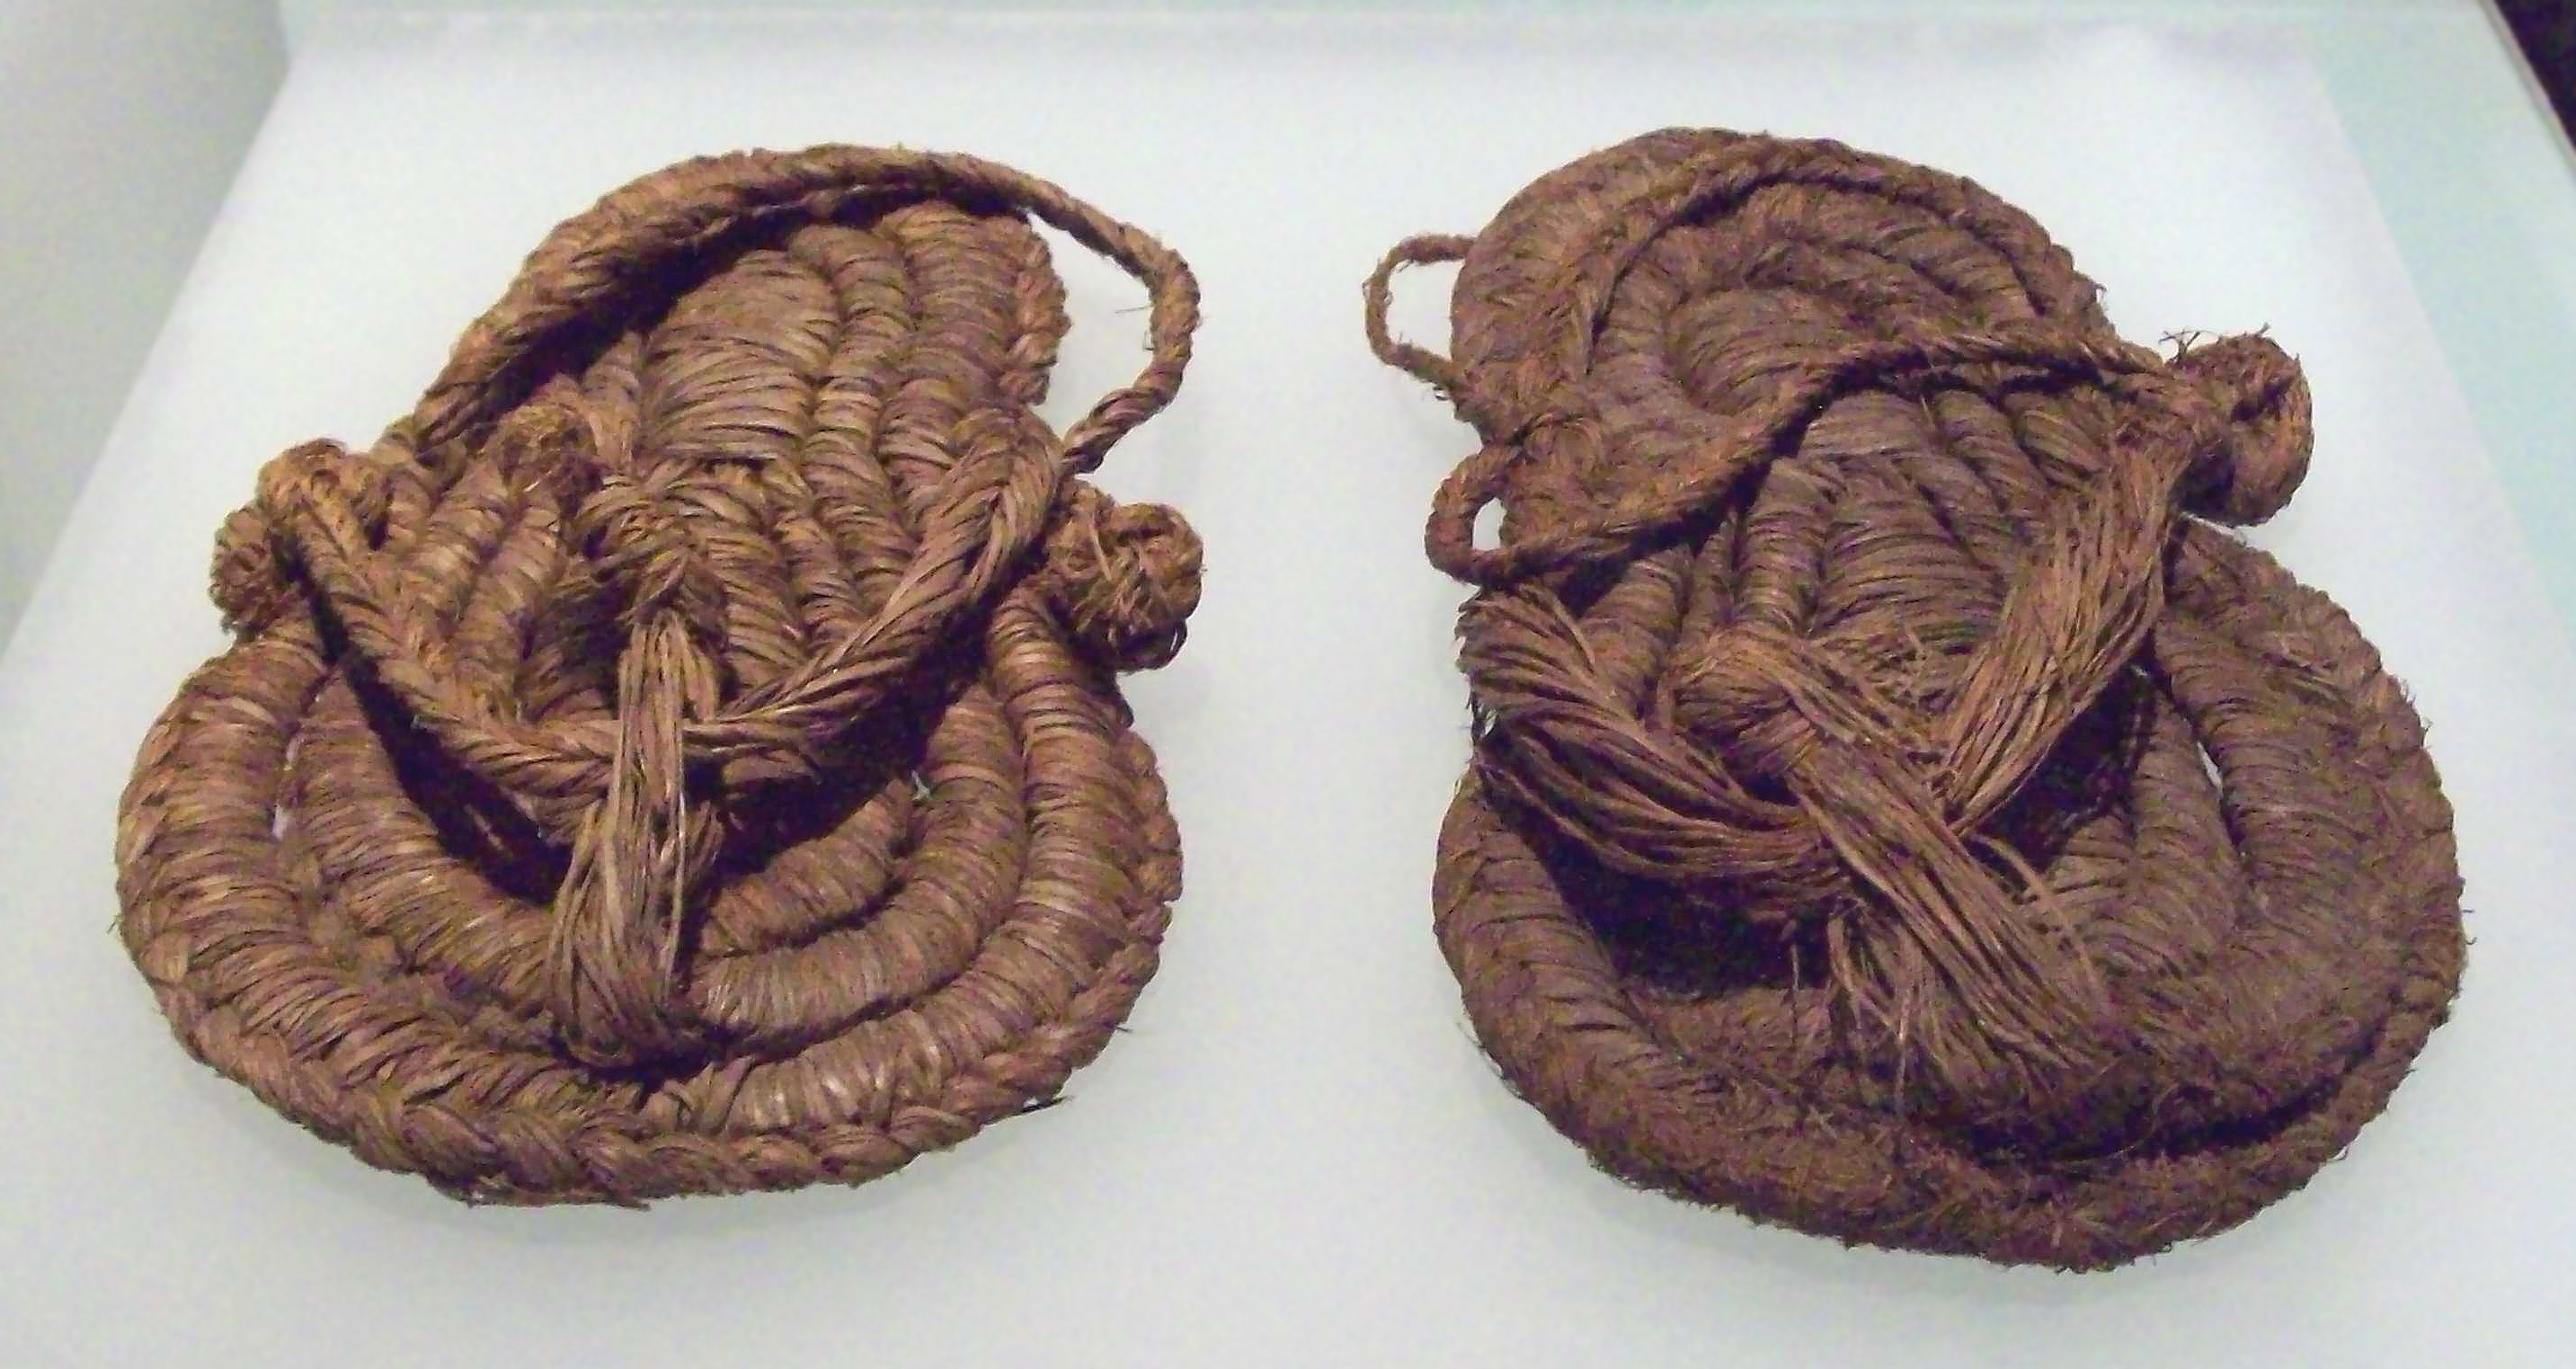 2eabcdb0ae Esparto sandals from the 6th or 5th millennium BC found in Spain